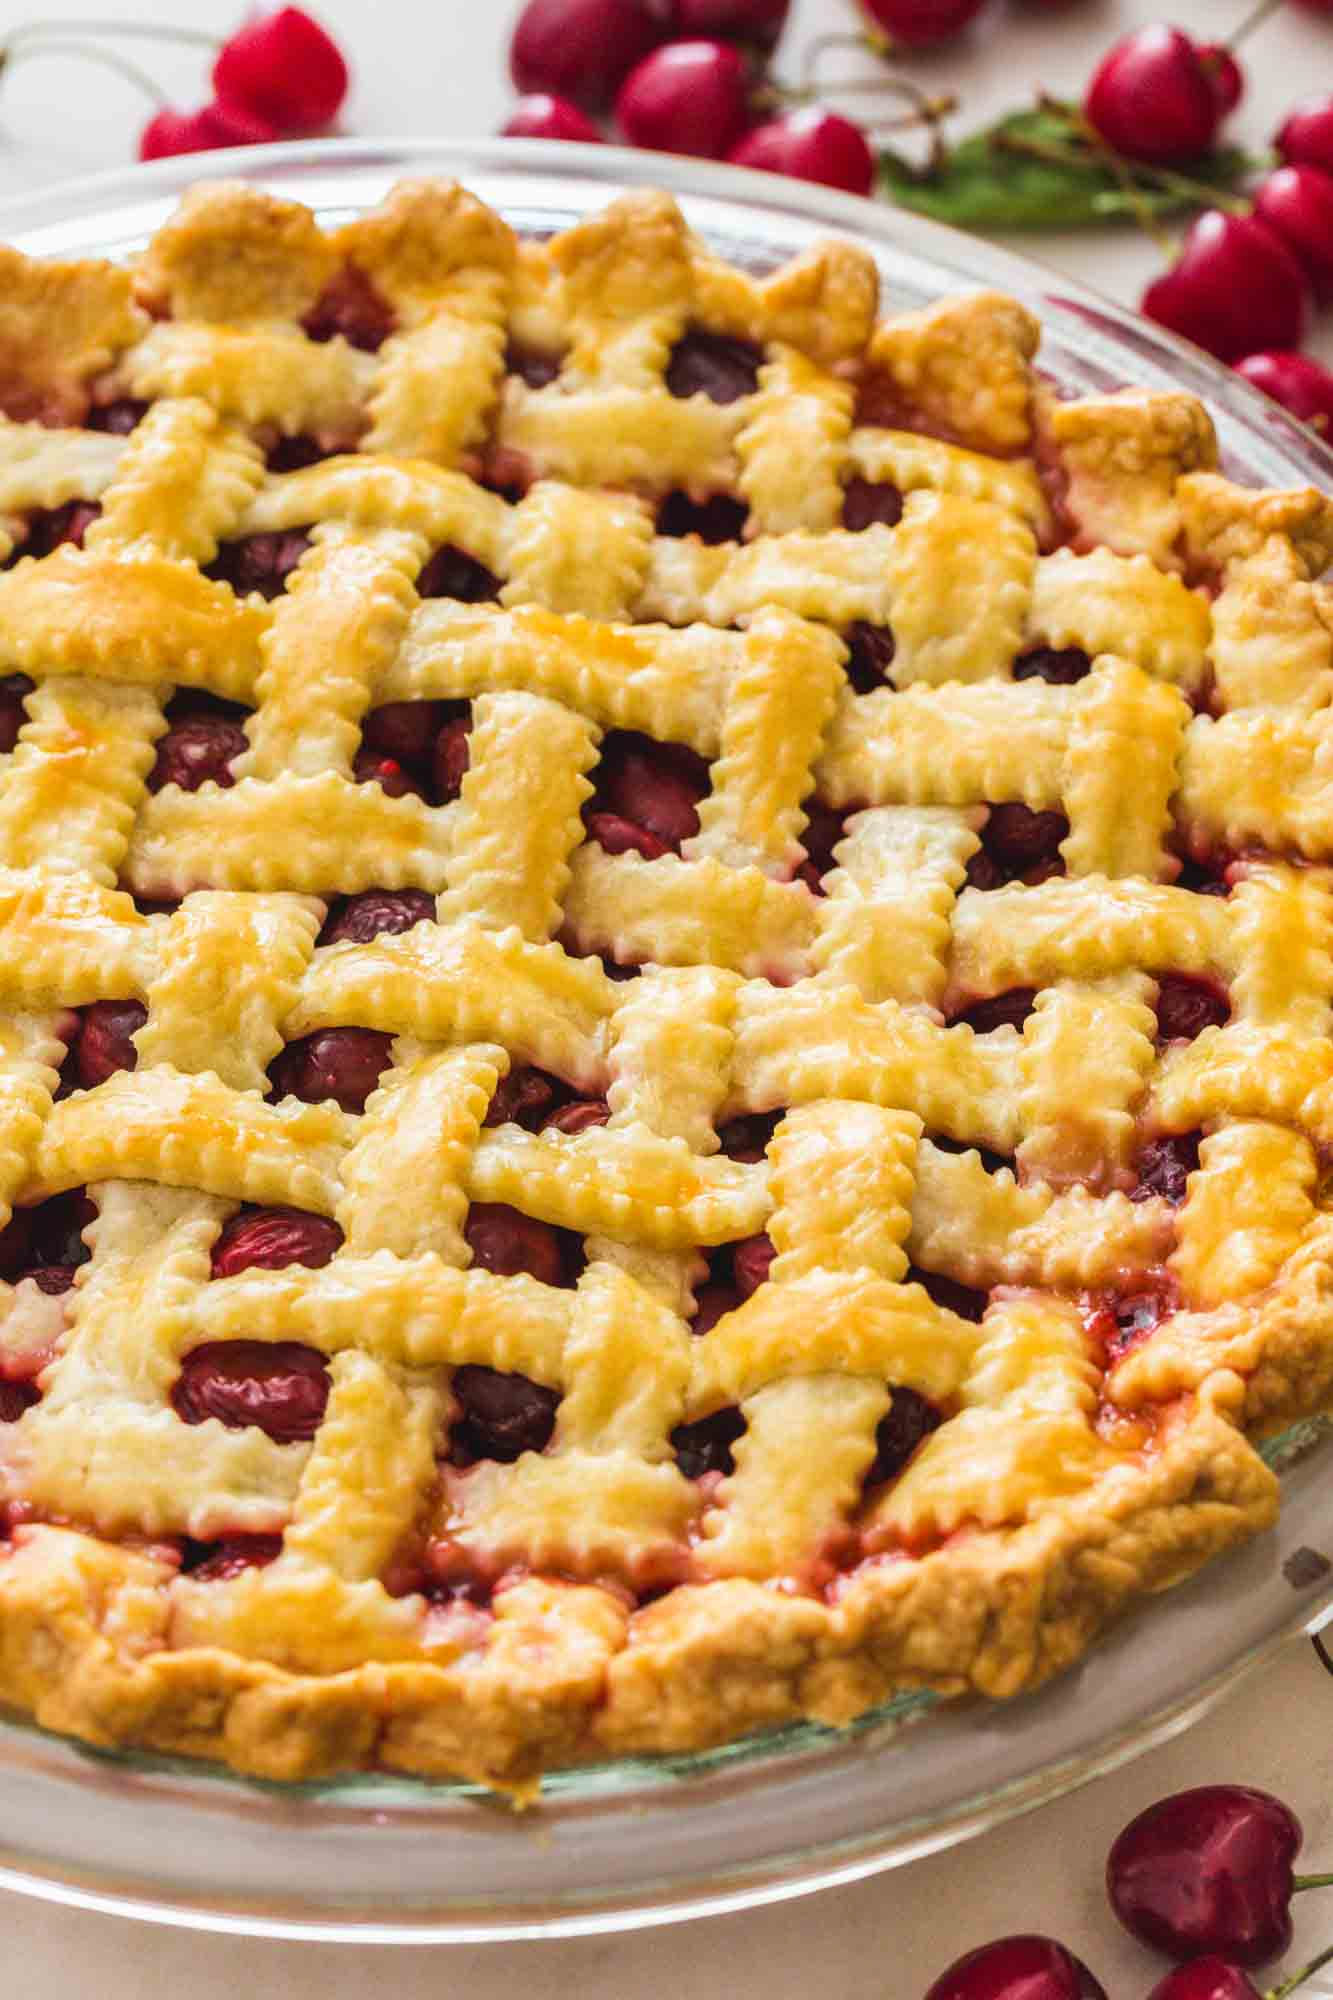 Cherry pie with lattice top, and fresh cherries on the sides